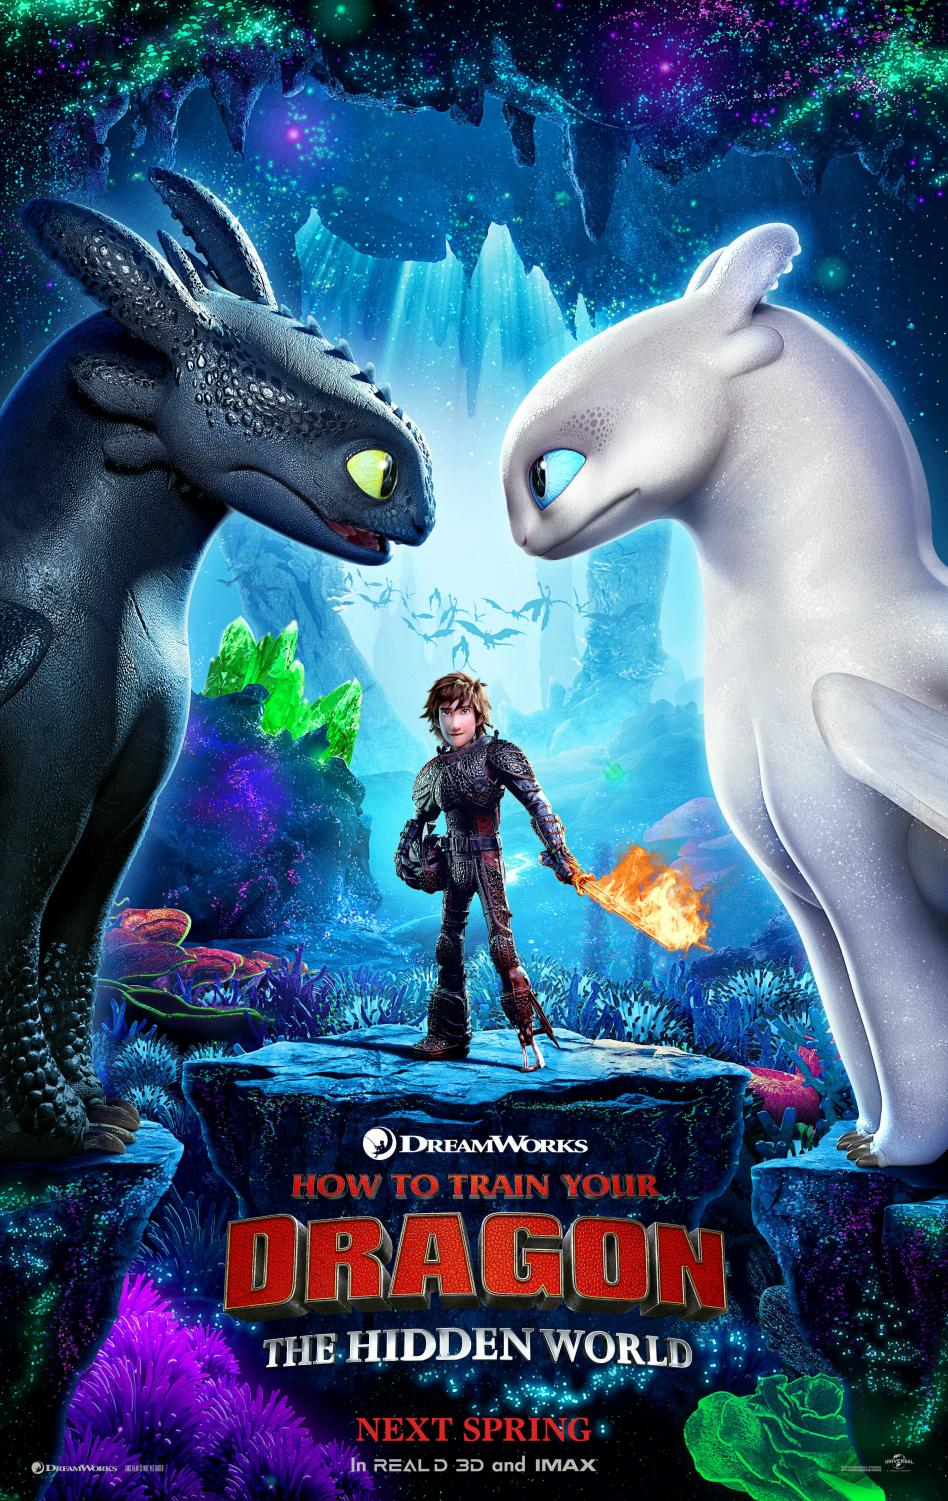 DreamWorks Animation presents the third film of the How To Train Your Dragon franchise.